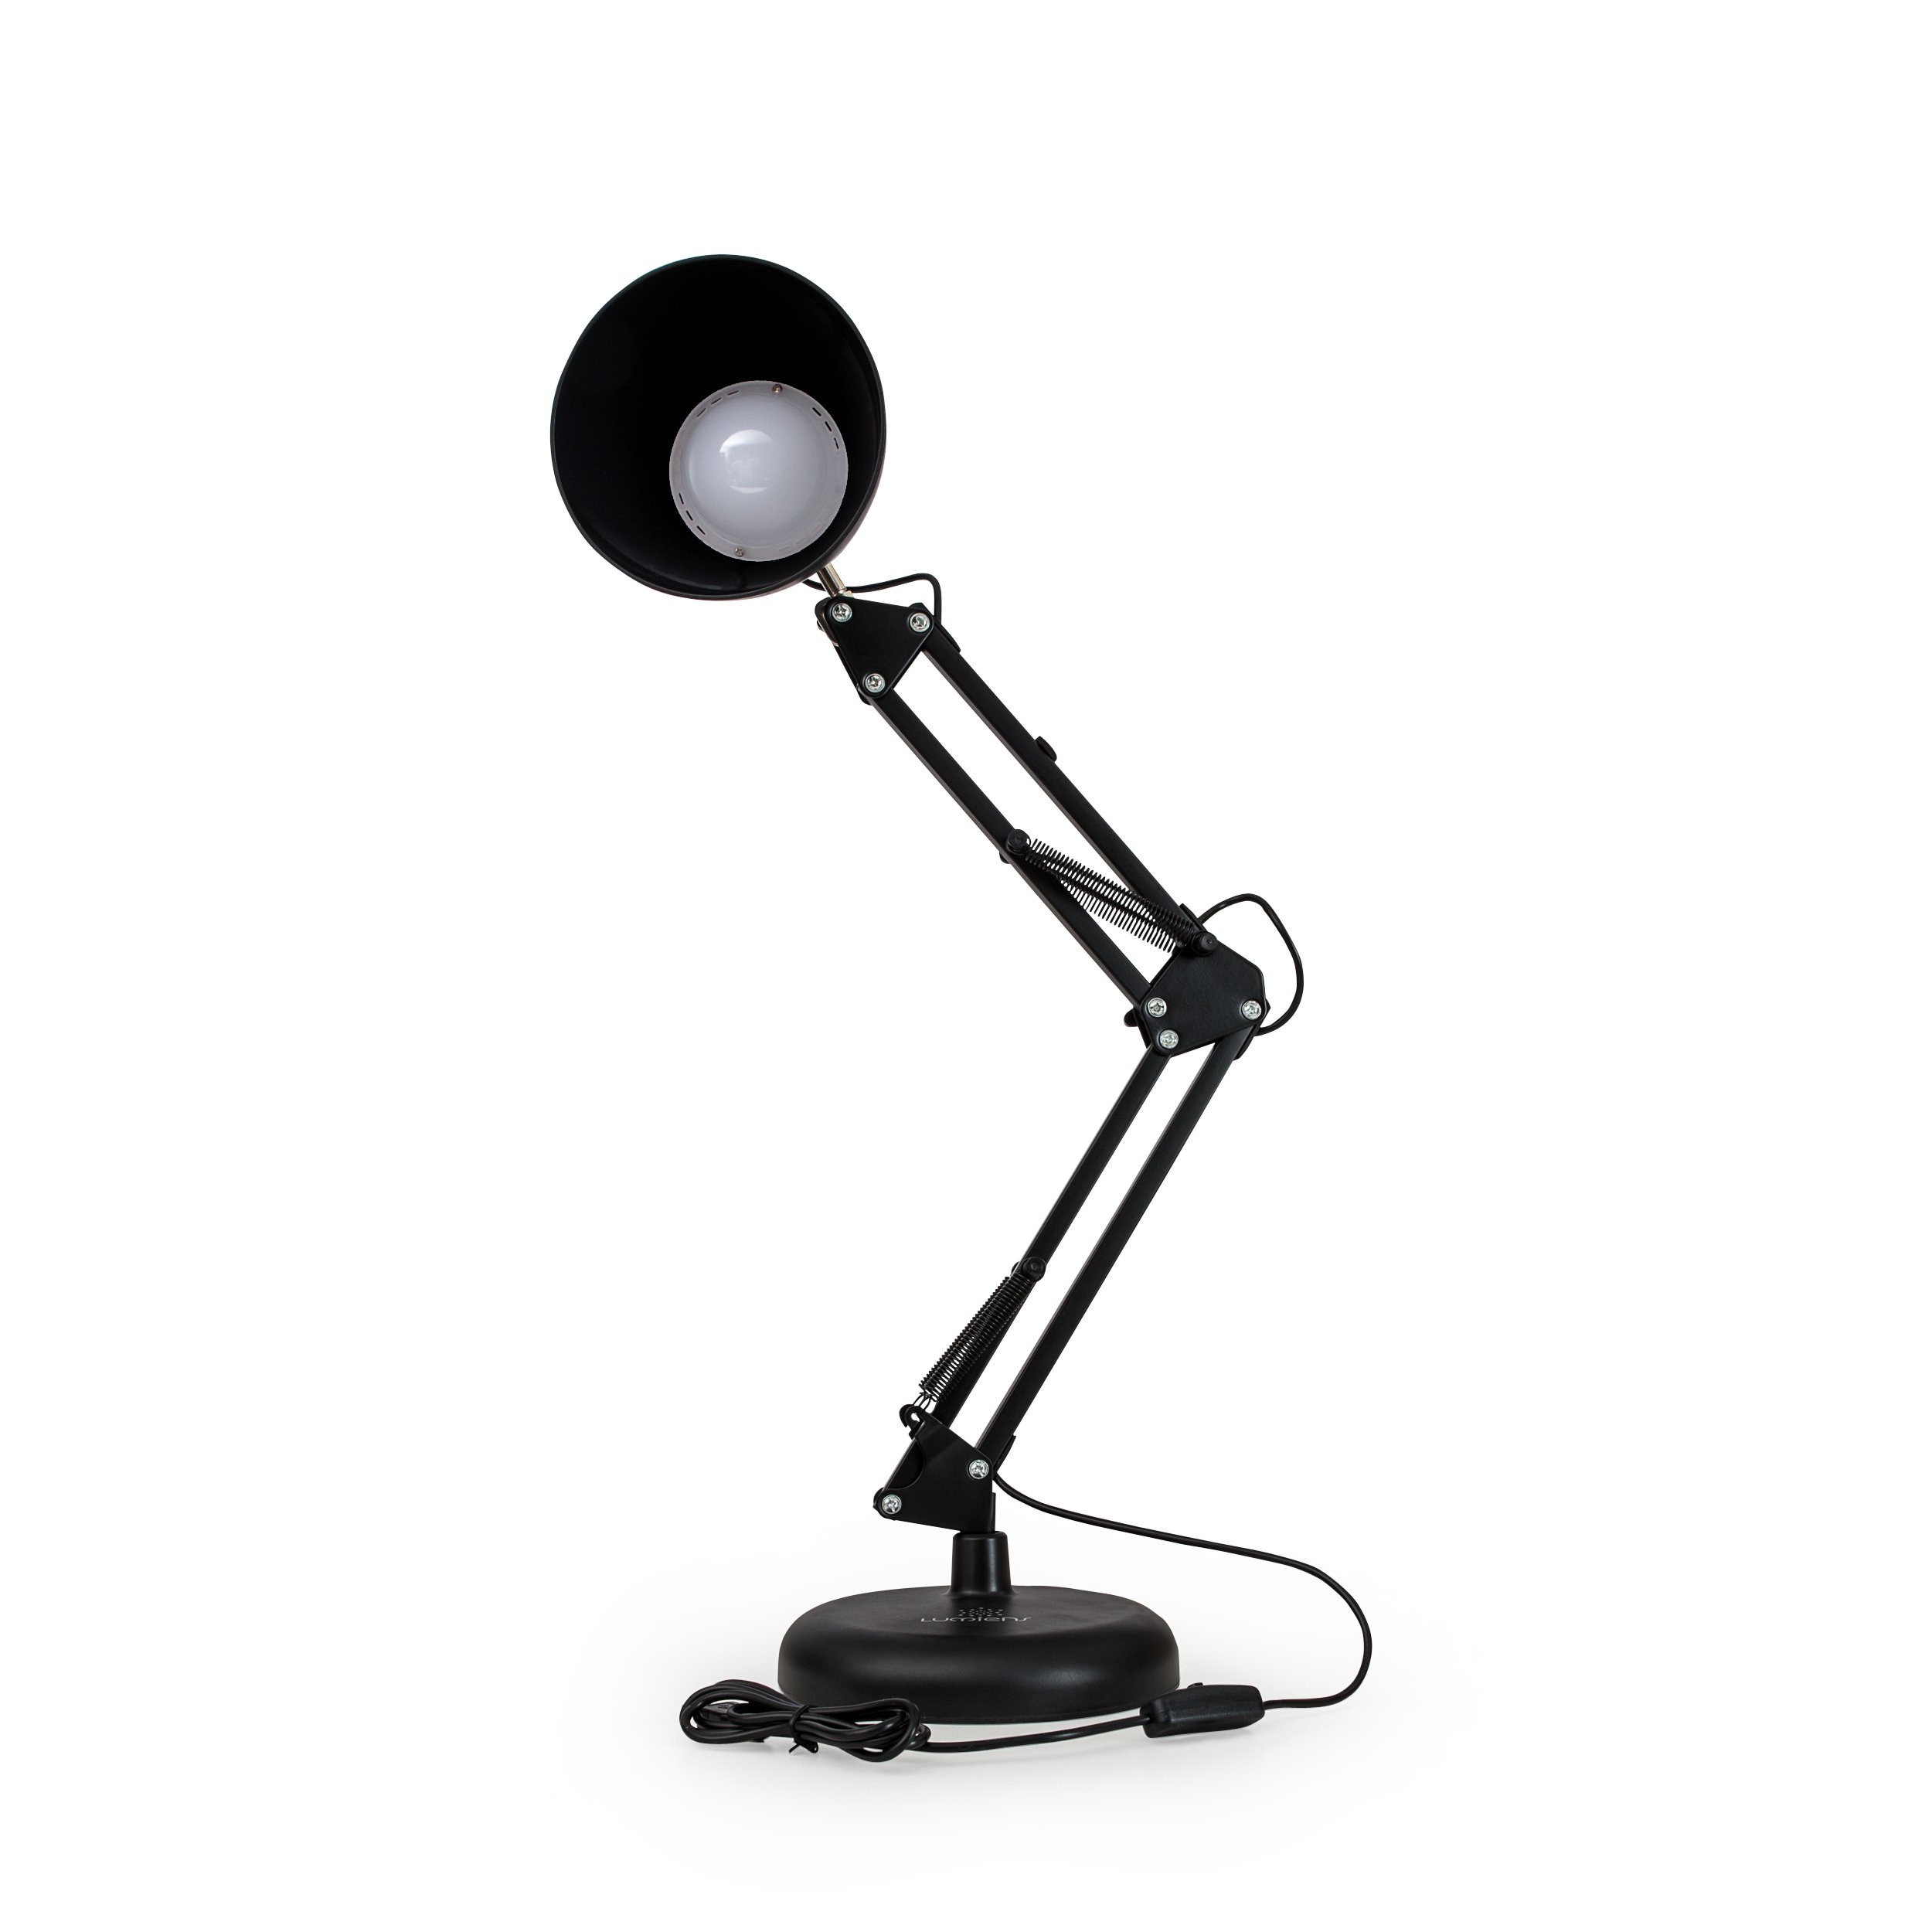 LUMIENS Astoria - Architect LED Desk Lamp - Adjustable Metal Swing Arm Task Table Light - Button Switch - Book Reading, Work Table, Craft Table, Desk, Night Stand, Drawer, Office, and More, Black